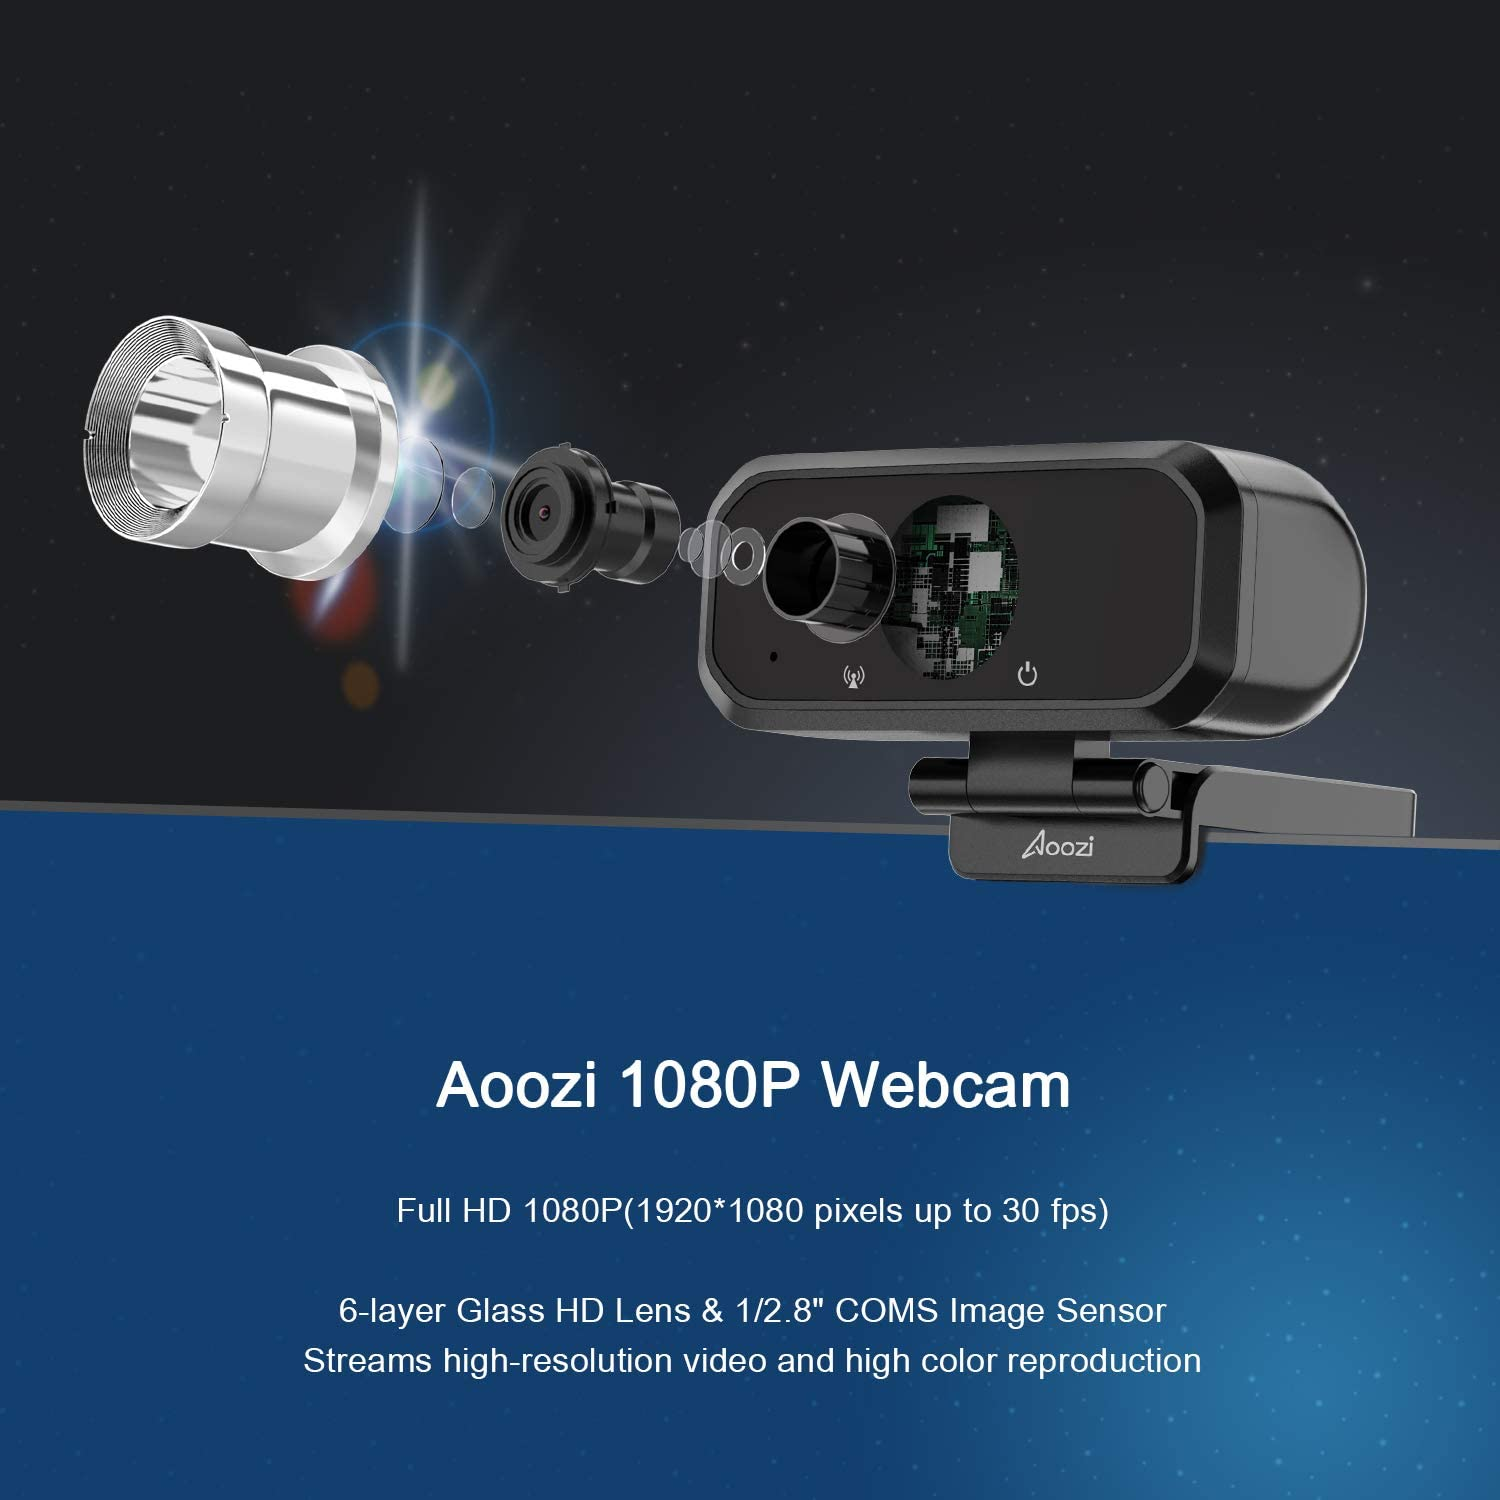 120 Degree Widescreen Web Camera Aoozi Upgrade Webcam Video Camera for Calling Conferencing Full HD 1080P Webcam with Privacy Cover and Tripod USB 3.0 Web Camera with Microphone